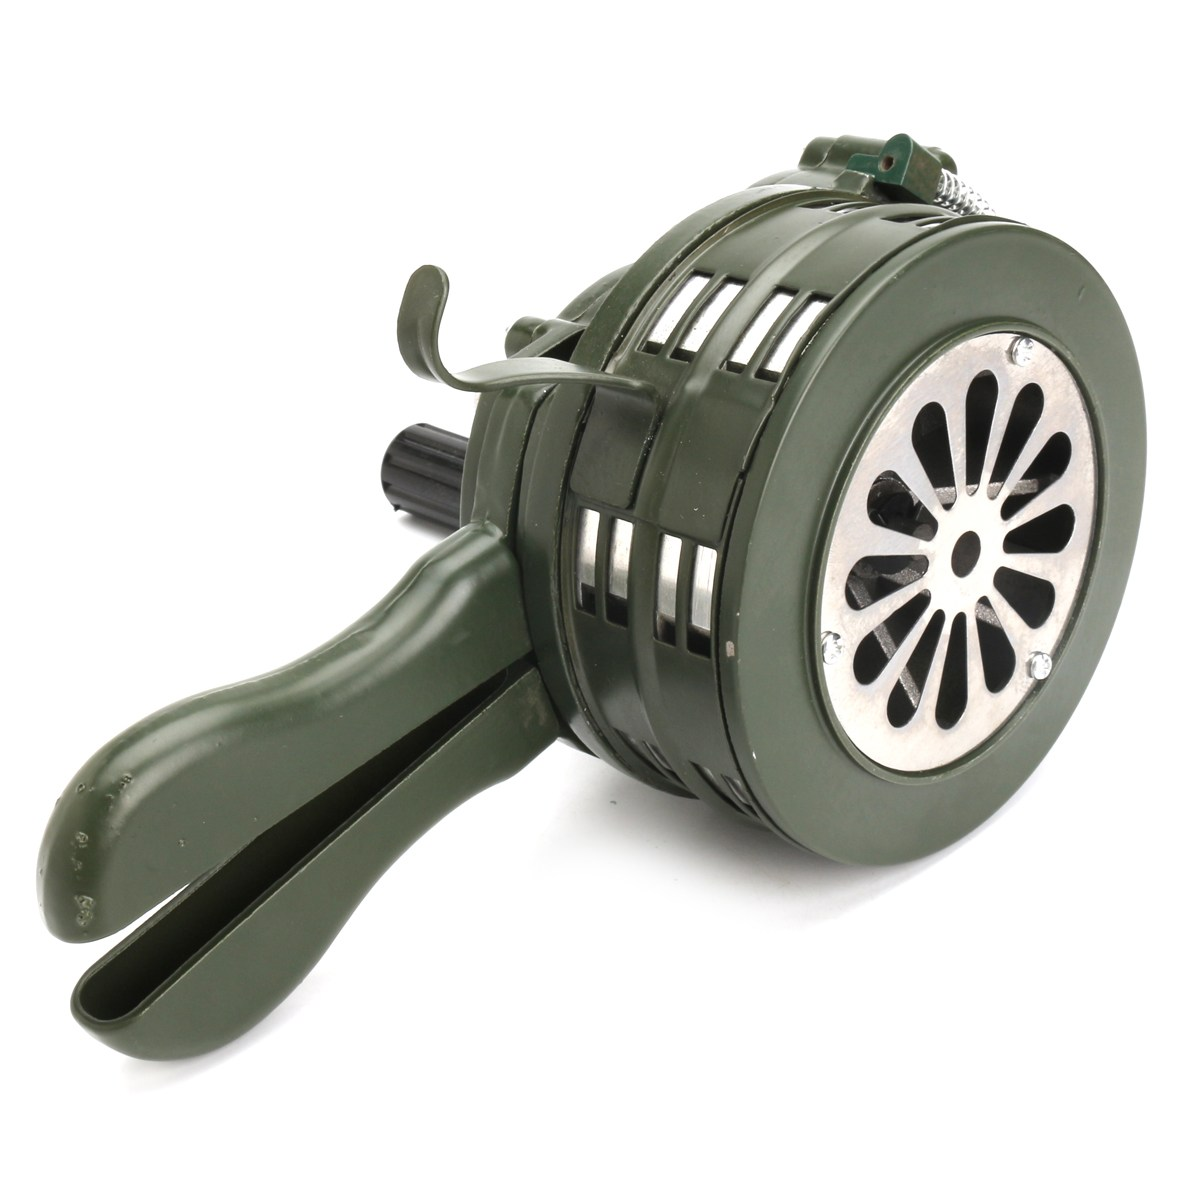 NEW Safurance Green Aluminium alloy Crank Hand Operated Air Raid Emergency Safety Alarm Siren Home Self Protection Security